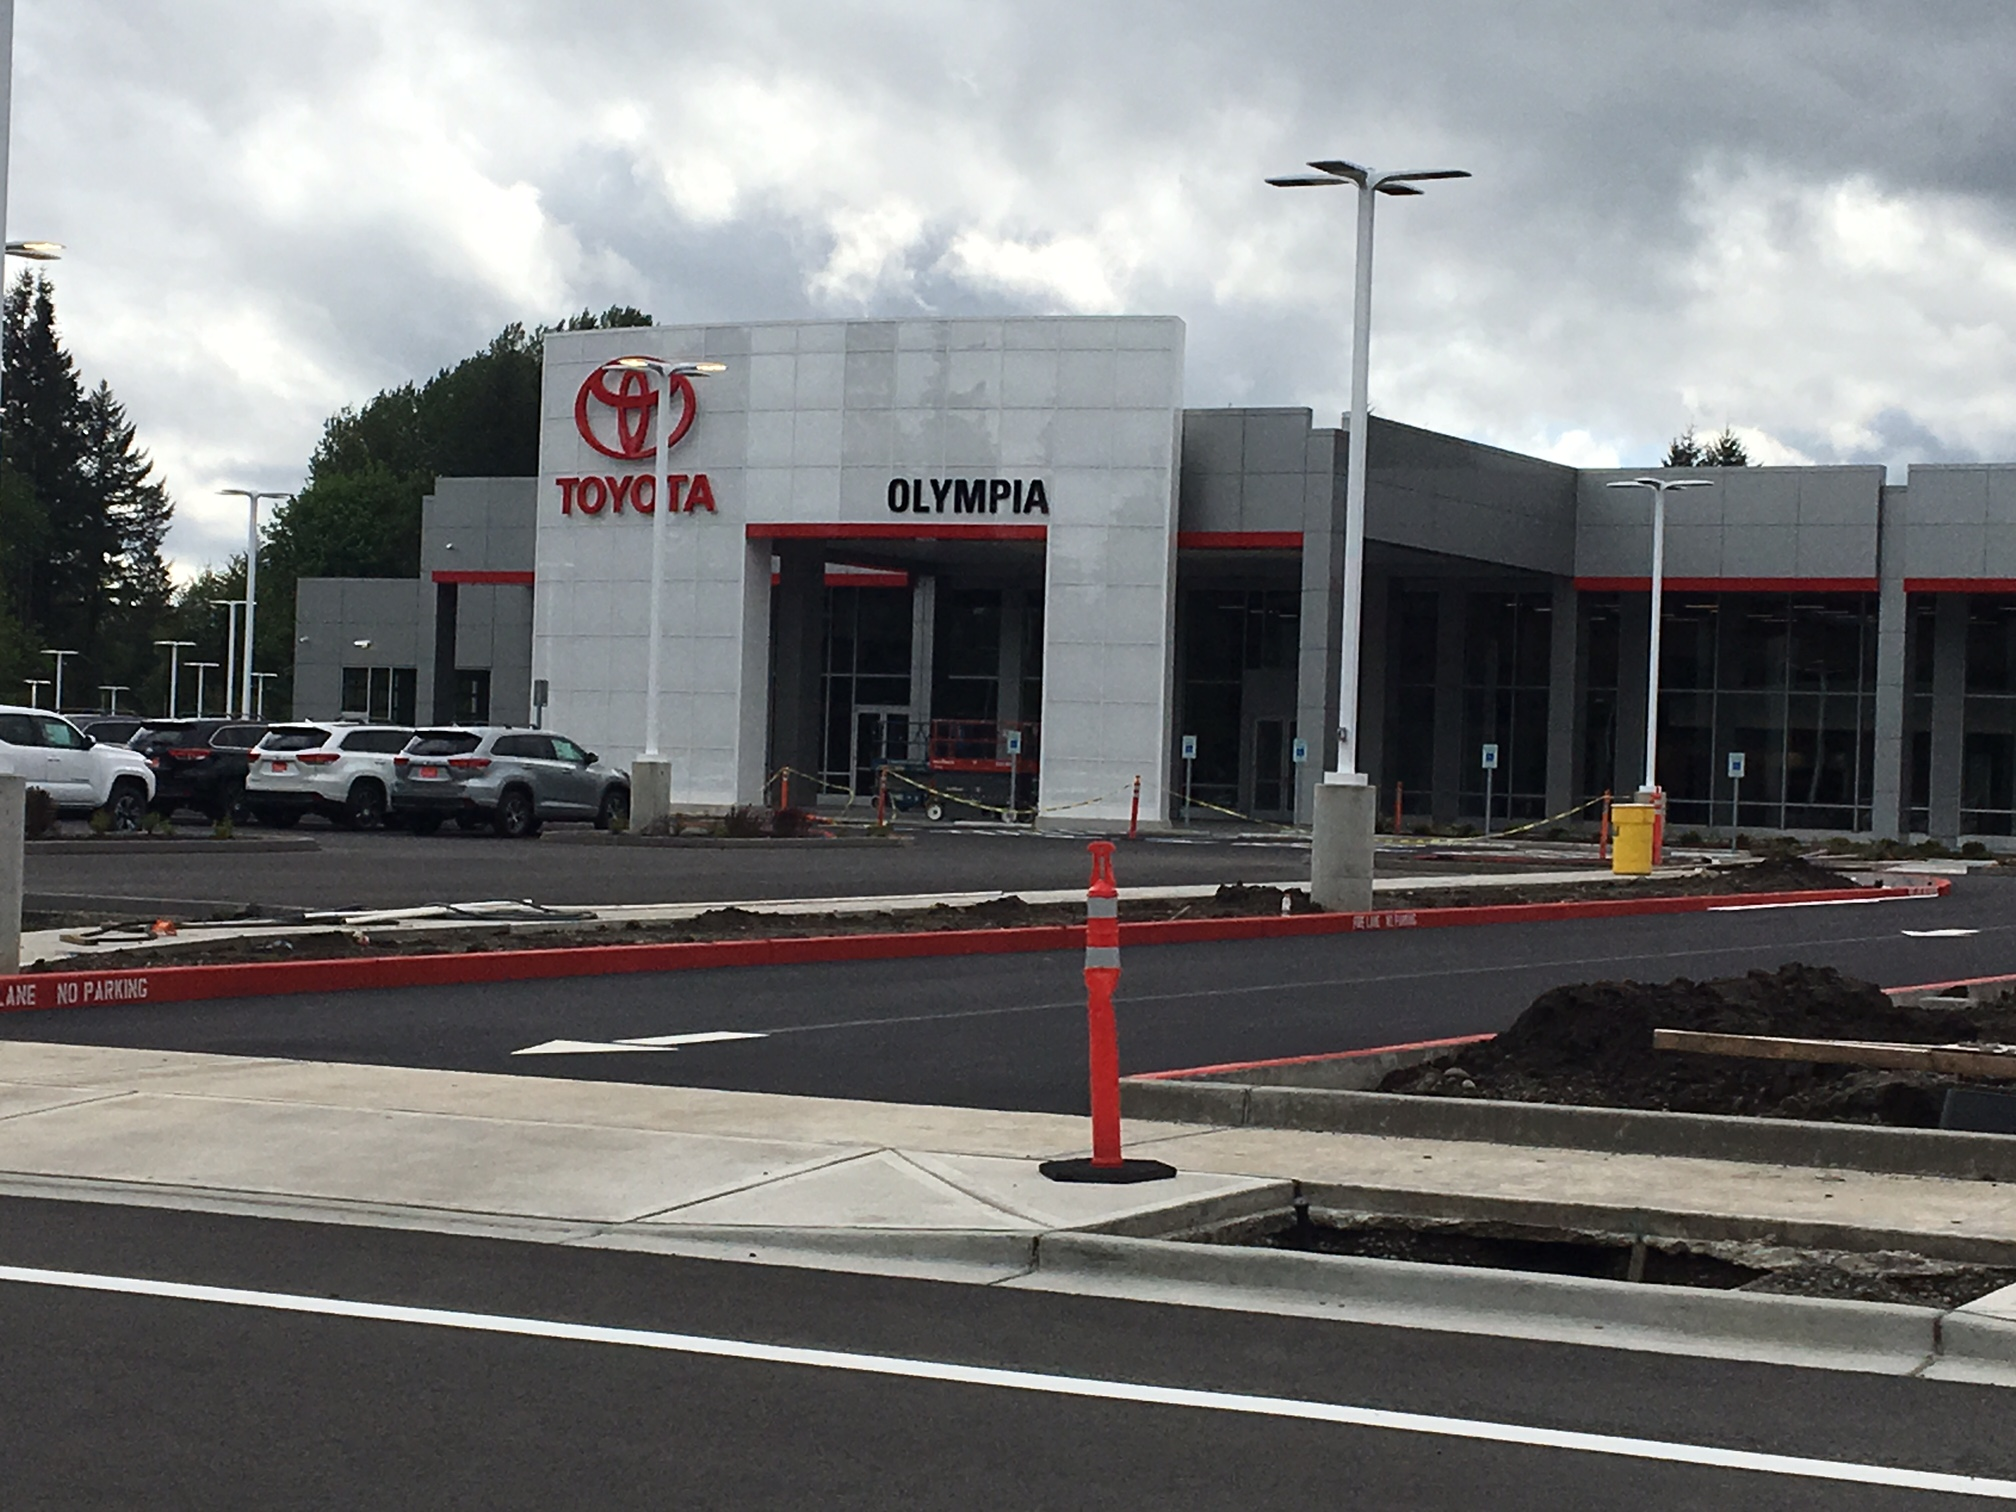 Toyota Of Olympia >> Toyota Of Olympia Moves To Tumwater To Give Customers A Stellar